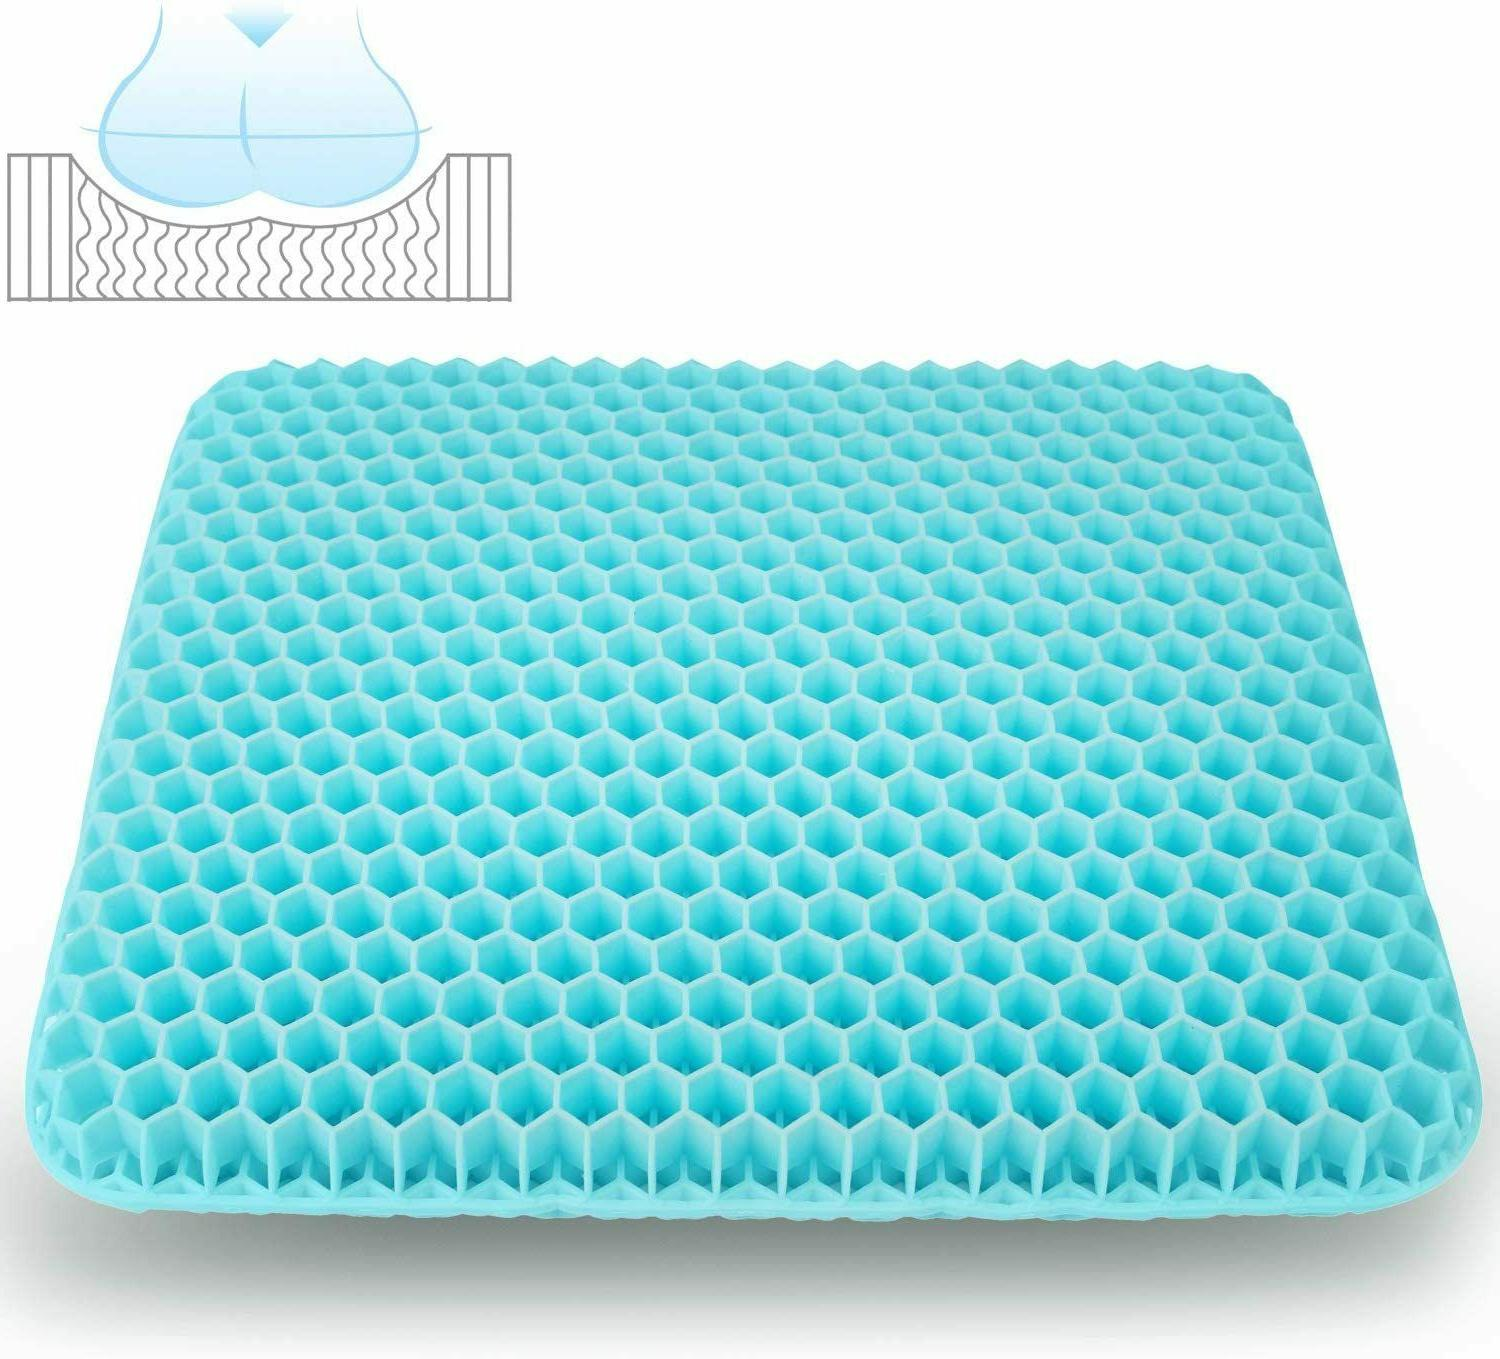 Gel Seat Cushion,Double Thick Design